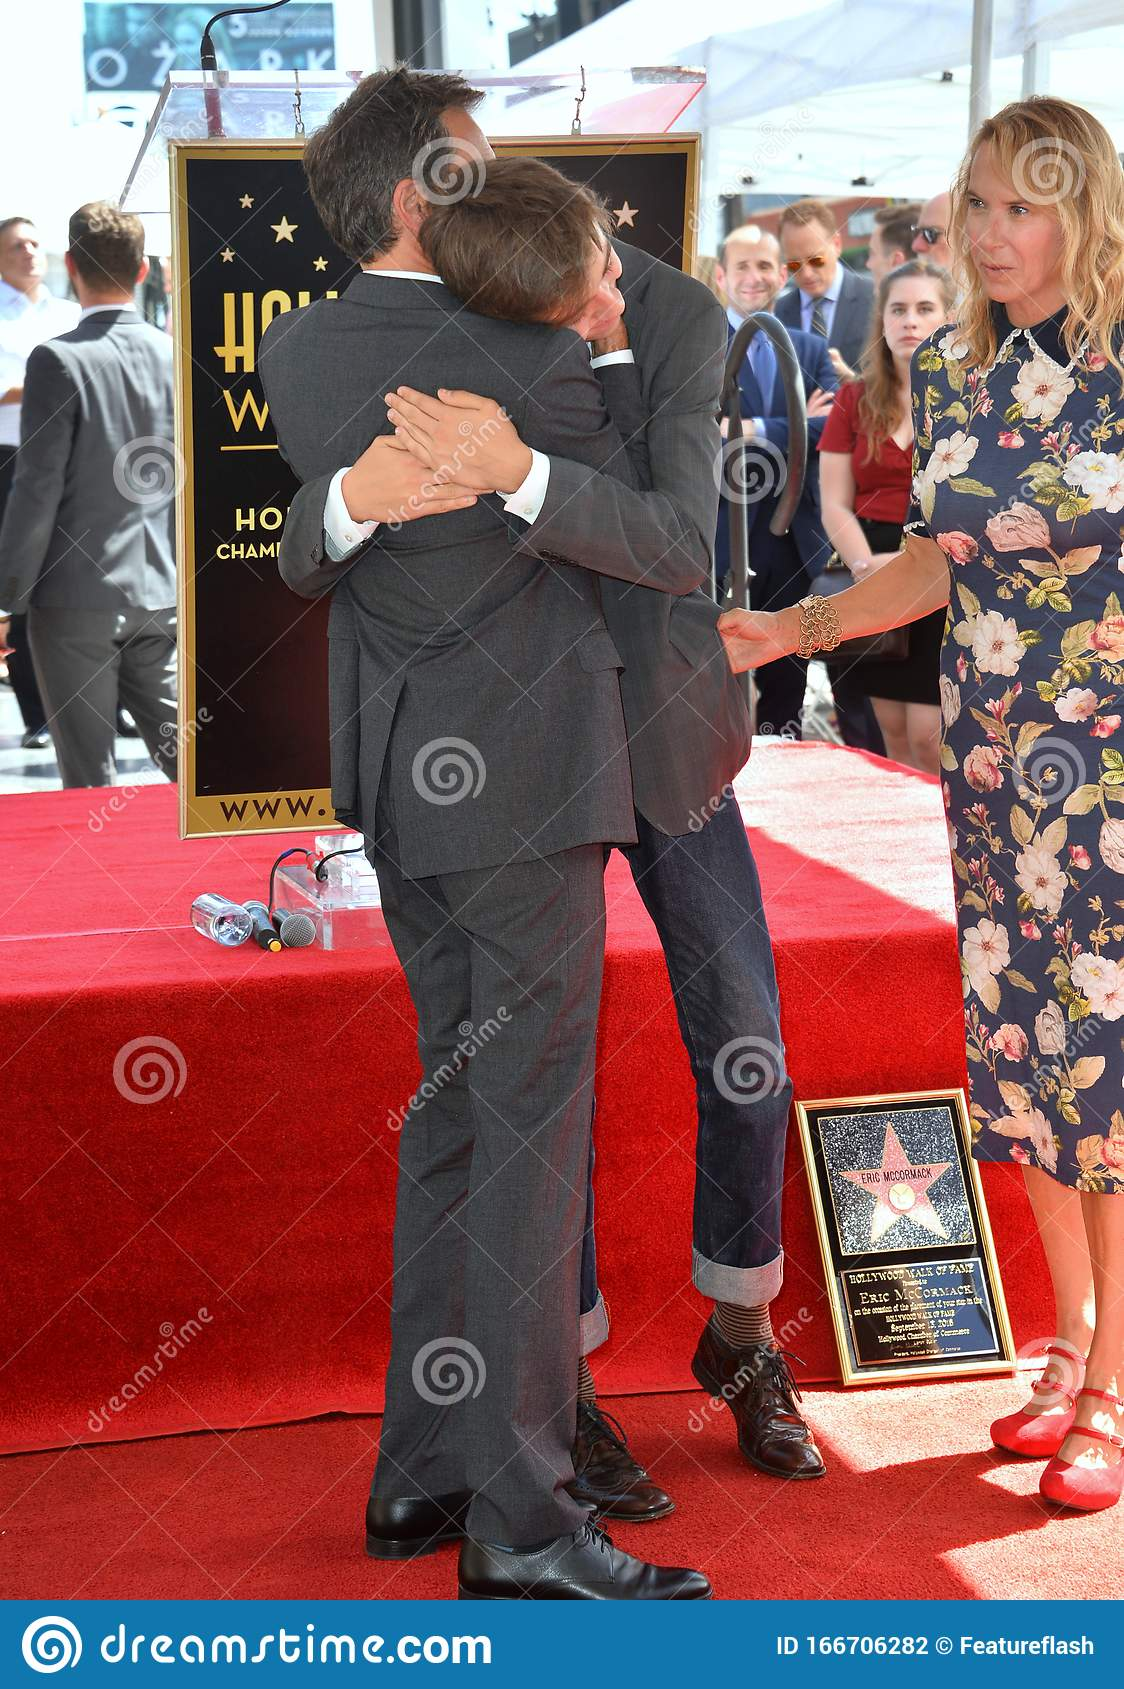 Eric Mccormack Finnigan Mccormack Janet Holden Editorial Photography Image Of Celebrities Star 166706282 People who liked janet holden's feet, also liked https www dreamstime com eric mccormack finnigan mccormack janet holden los angeles ca september eric mccormack finnigan mccormack janet holden image166706282